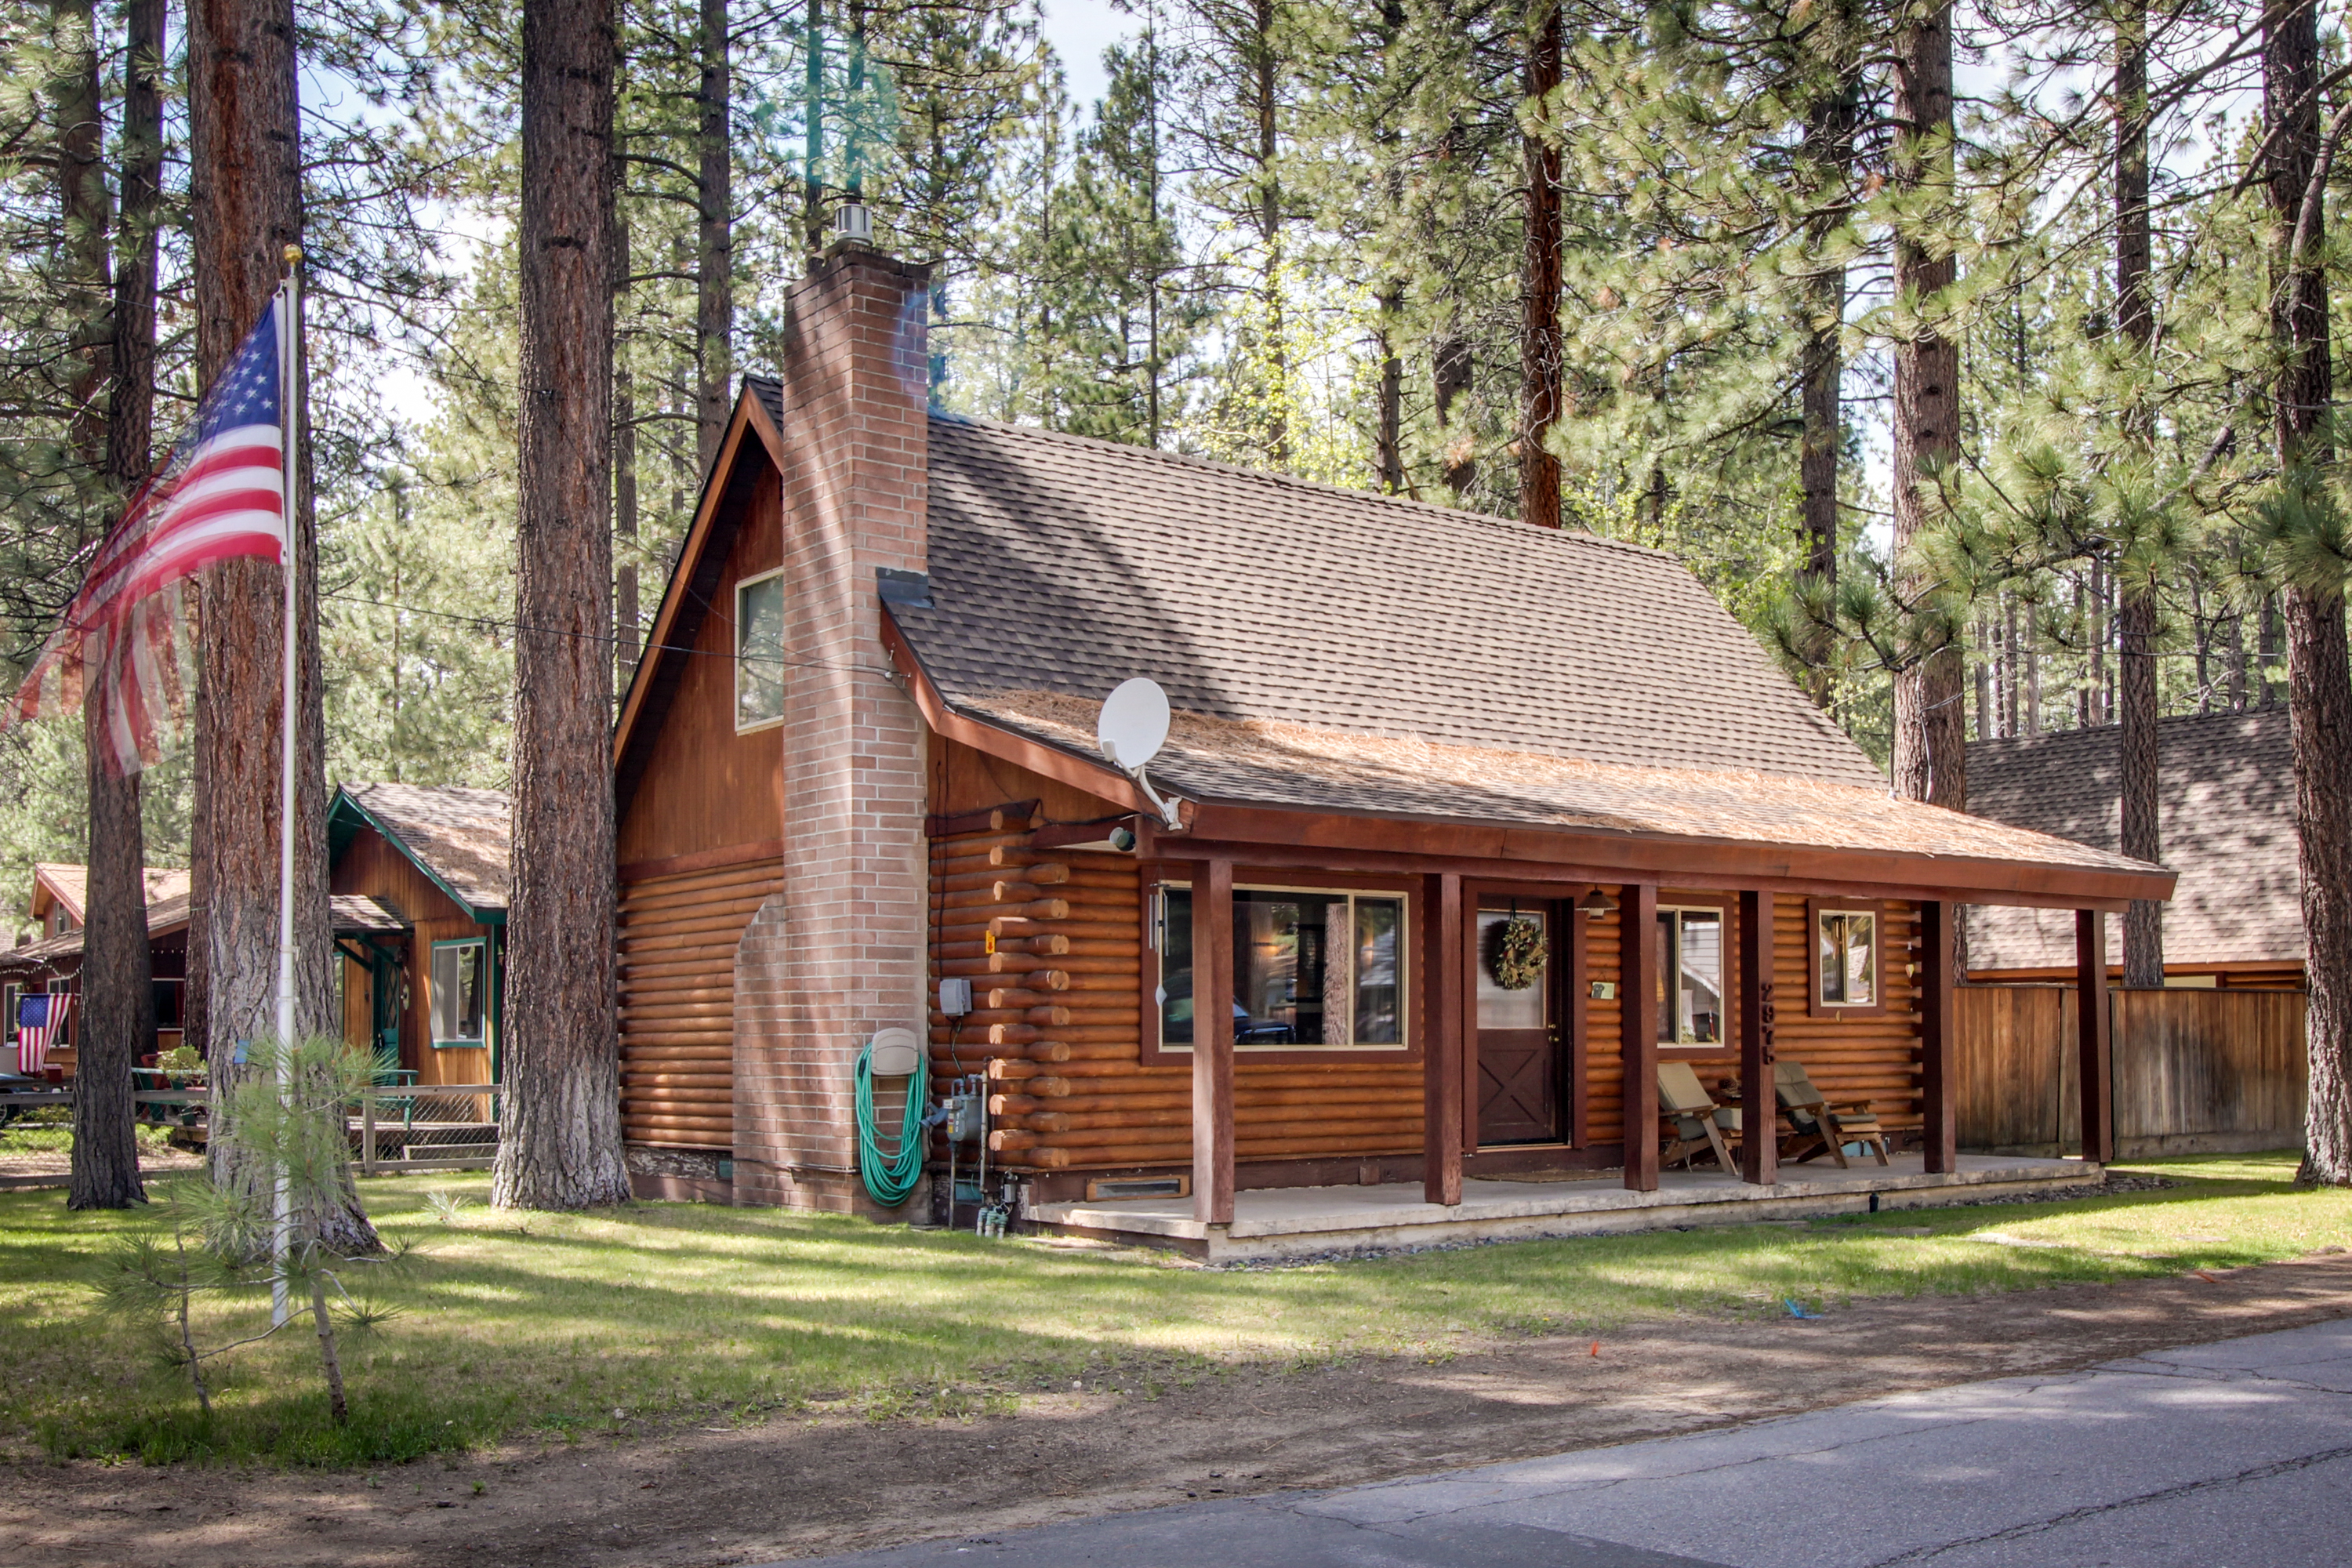 lake drobek city in info nevada for tahoe friendly sale vacation ca near homes cabins redawng pet